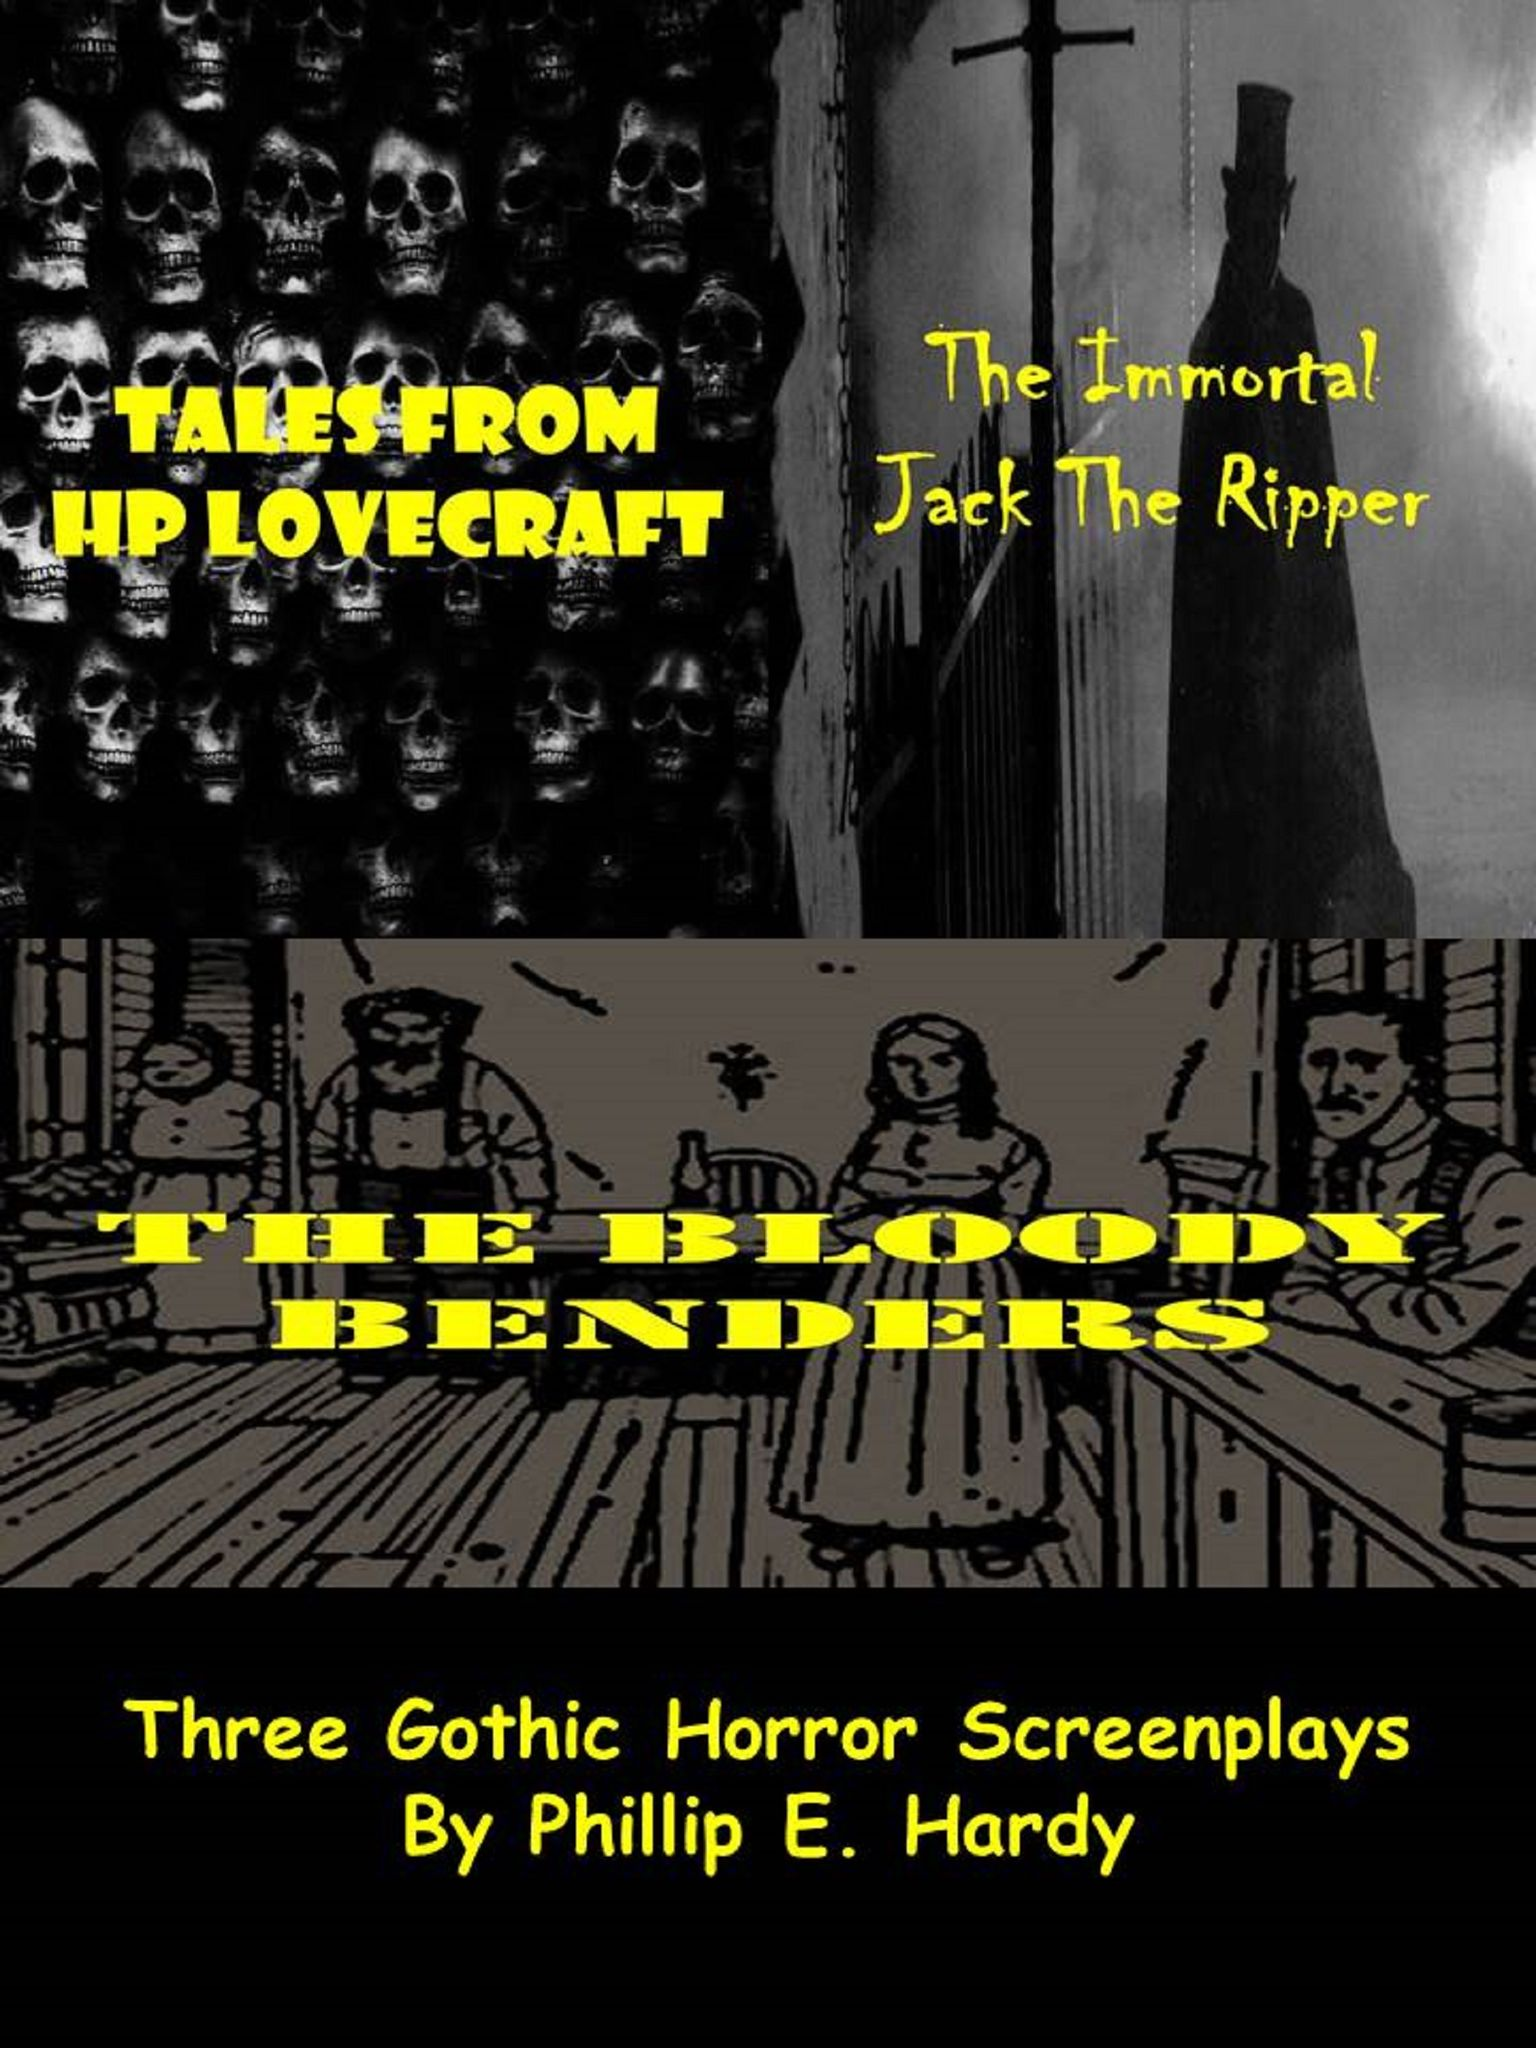 Three Horror Screenplays by Phillip E. Hardy